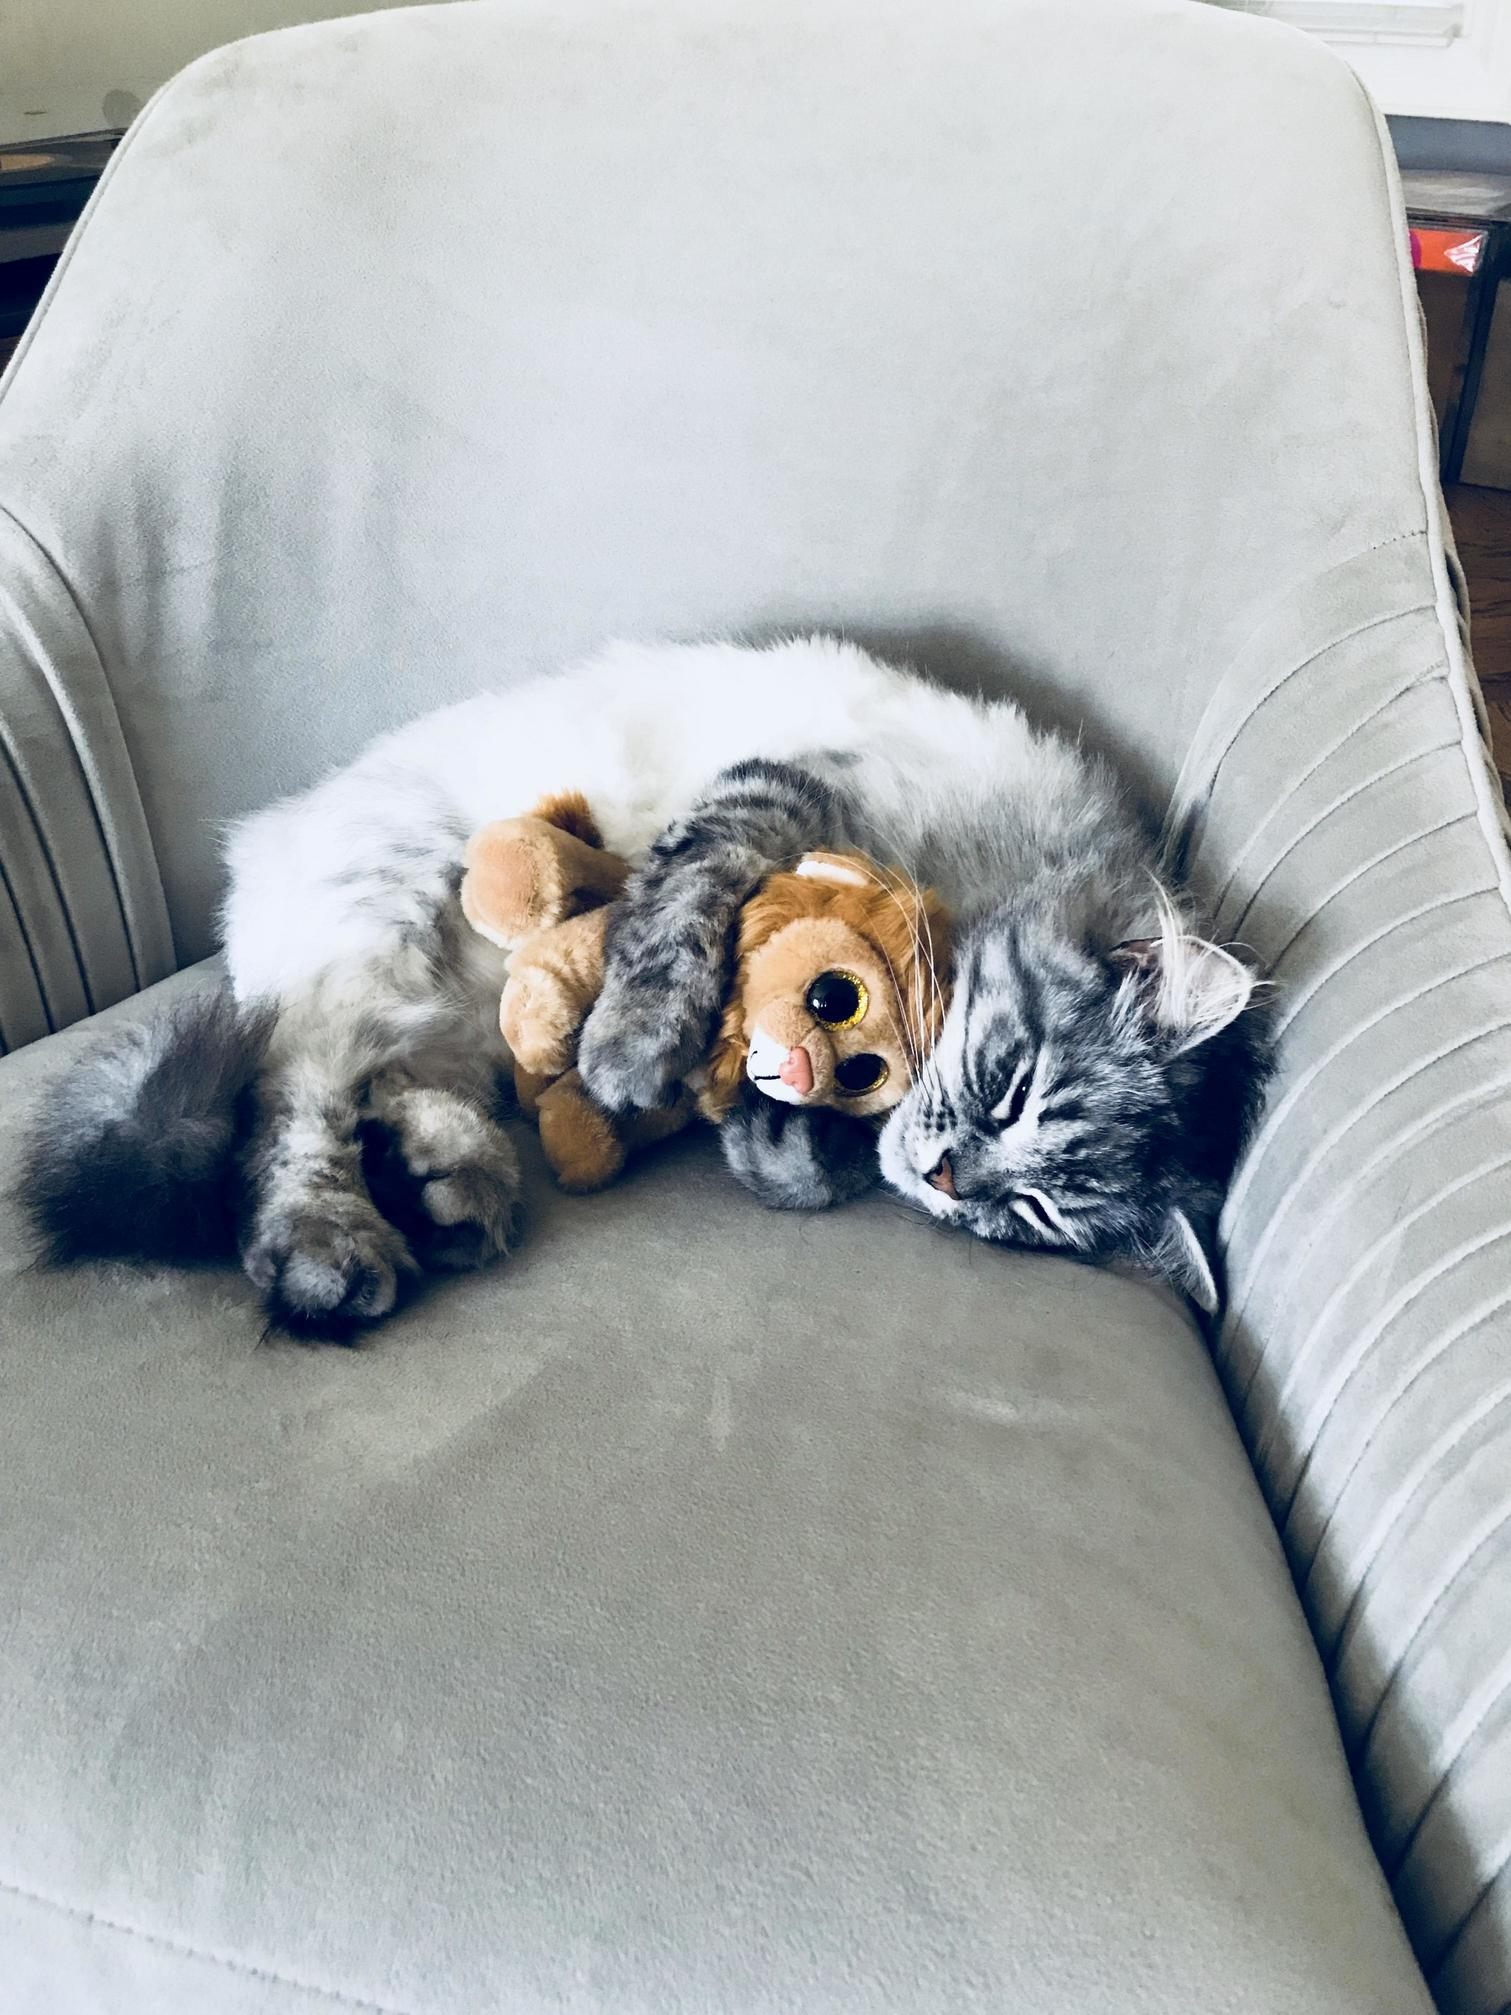 Mitri, the 3 year old siberian, is mourning the sudden loss of his twin brother